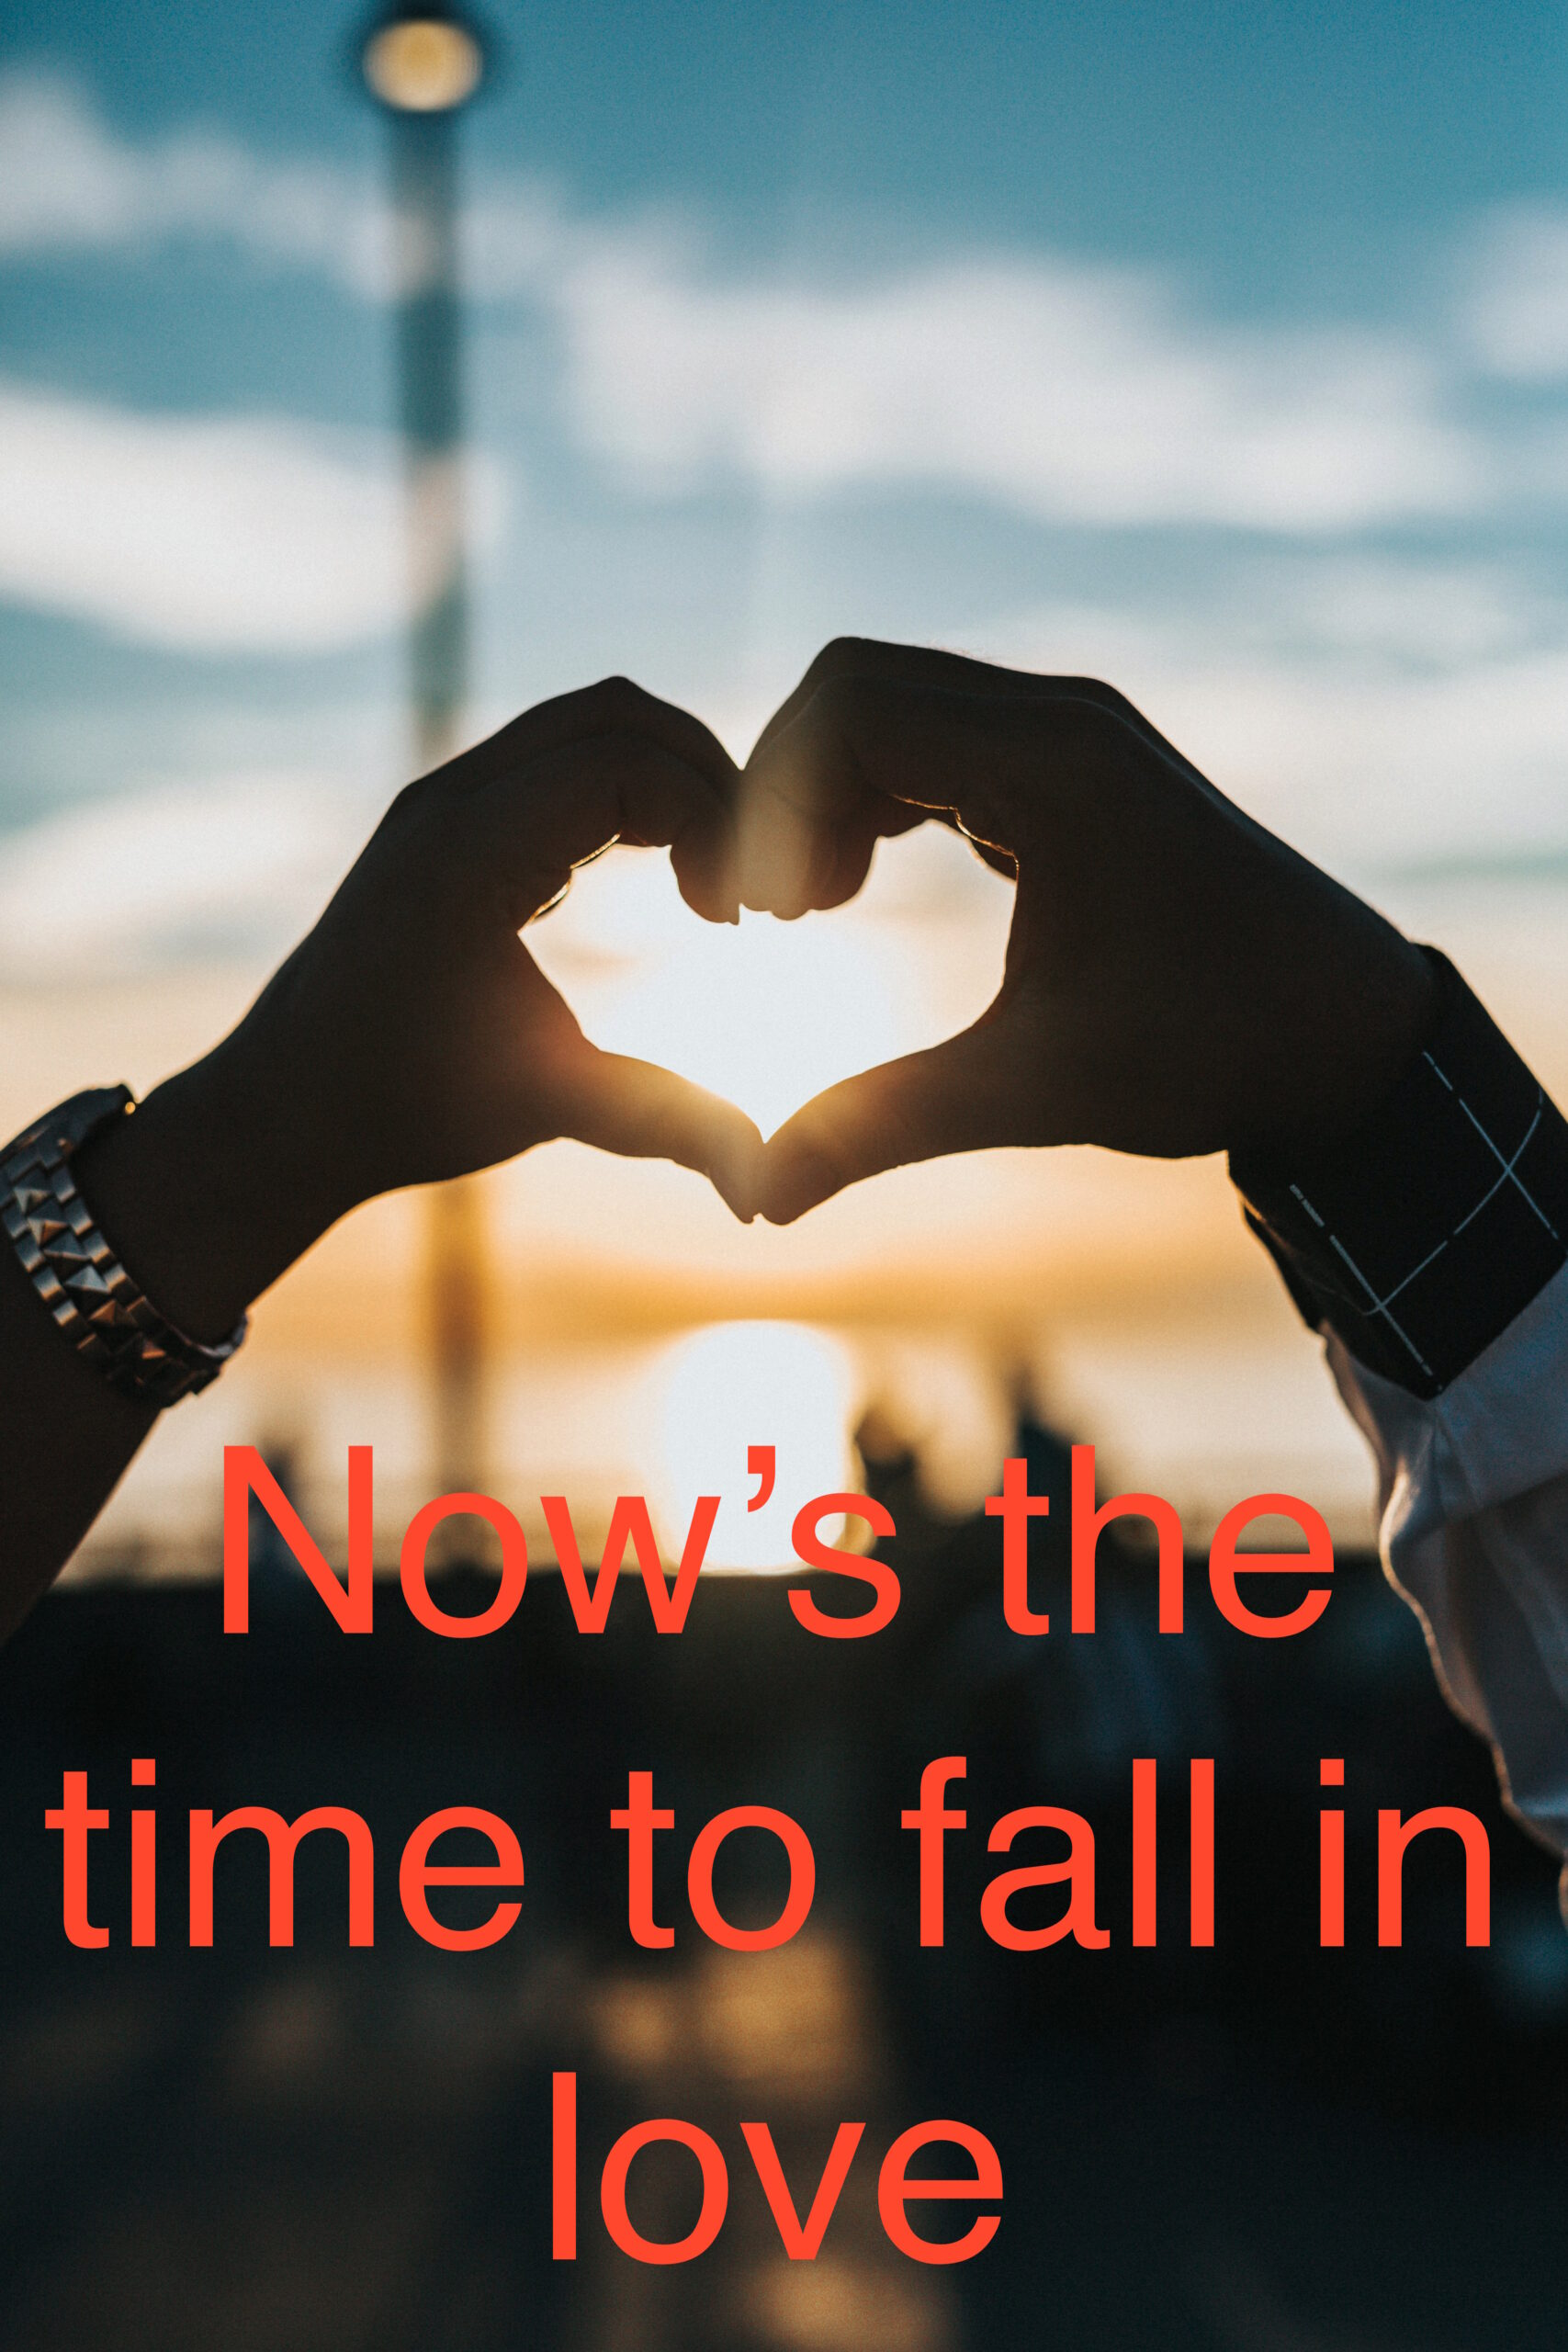 Now's the Time to Fall in Love